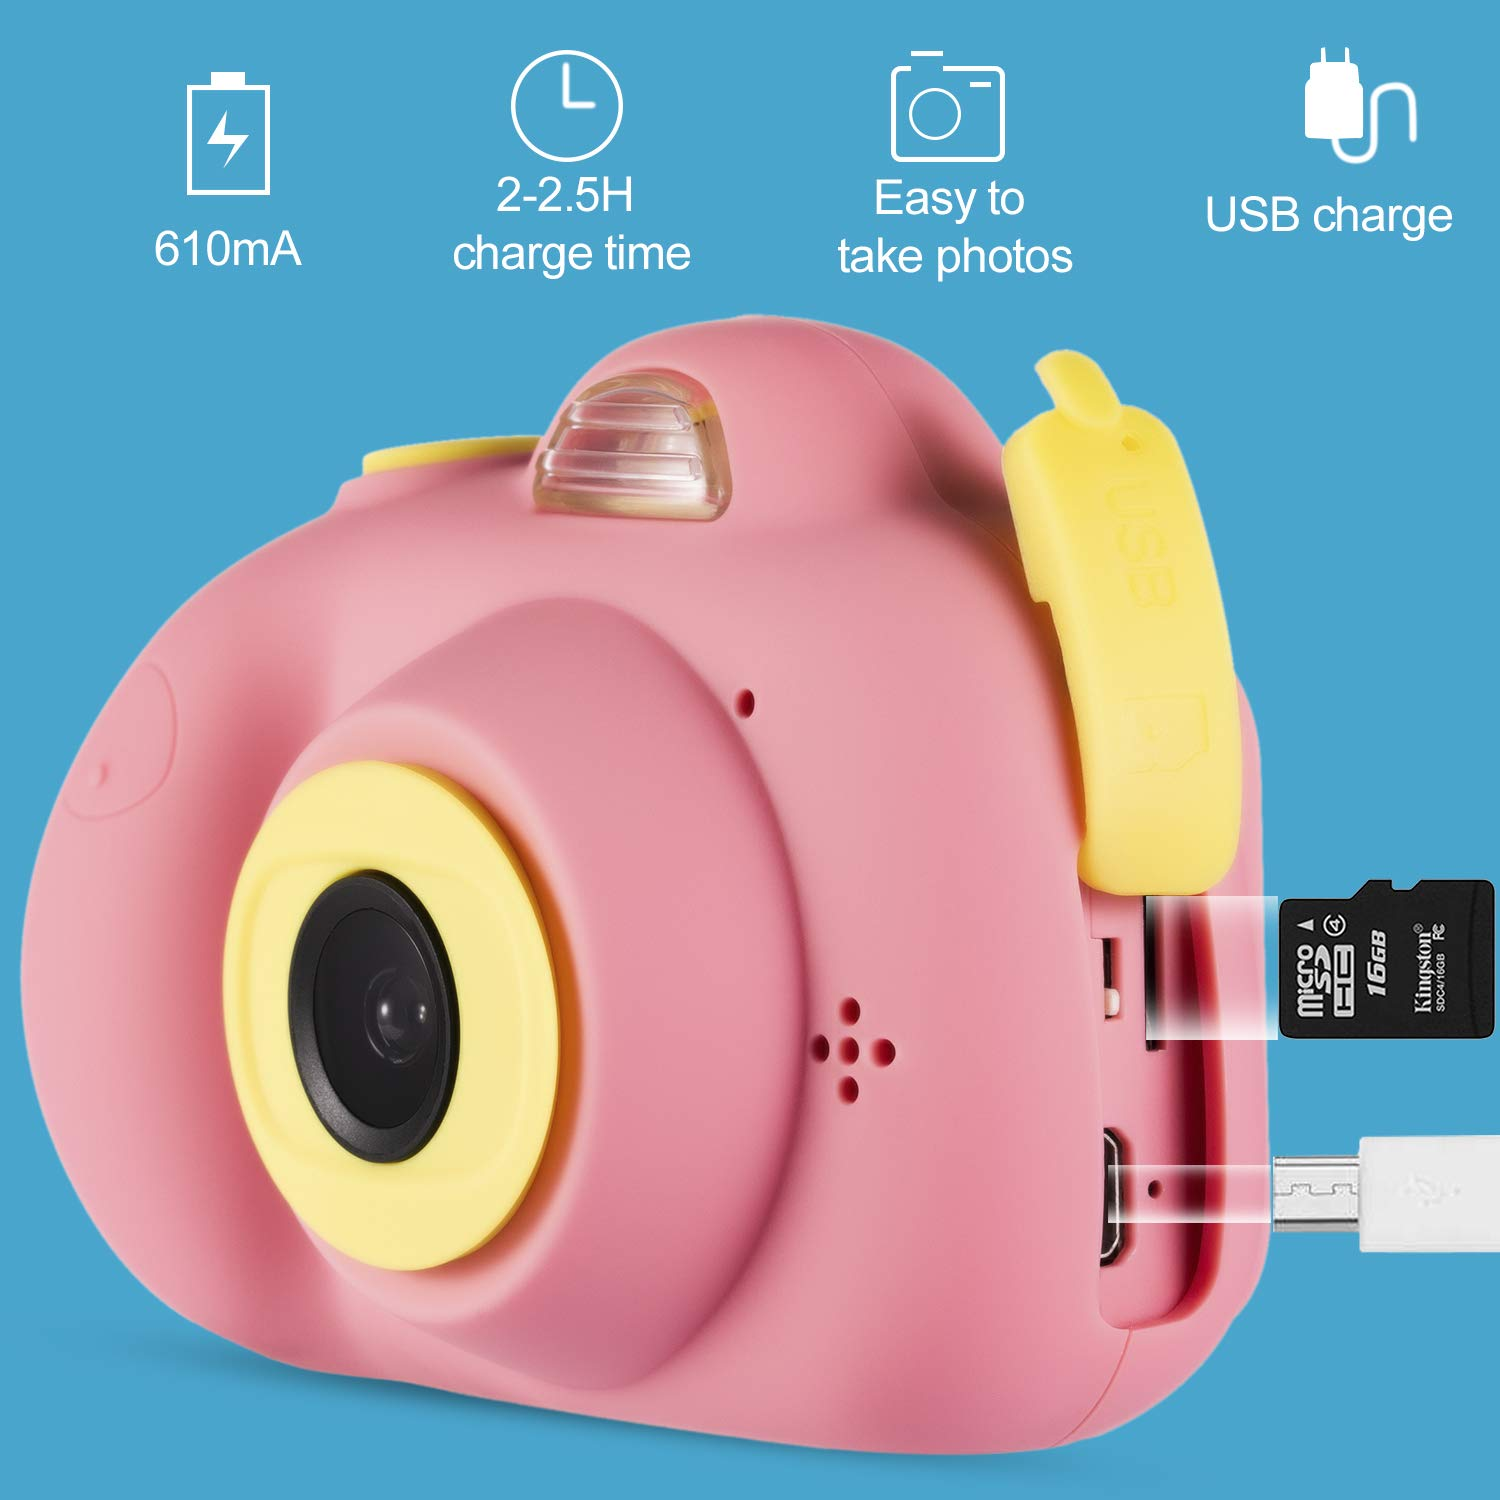 omzer Gift Kids Camera Toys for Girls, Cute Children Cameras Mini Camcorder for 3-8 Years Old Girl with 8MP HD Video Lens Great for Shooting, Deep Pink(16GB Memory Card Included) by omzer (Image #3)